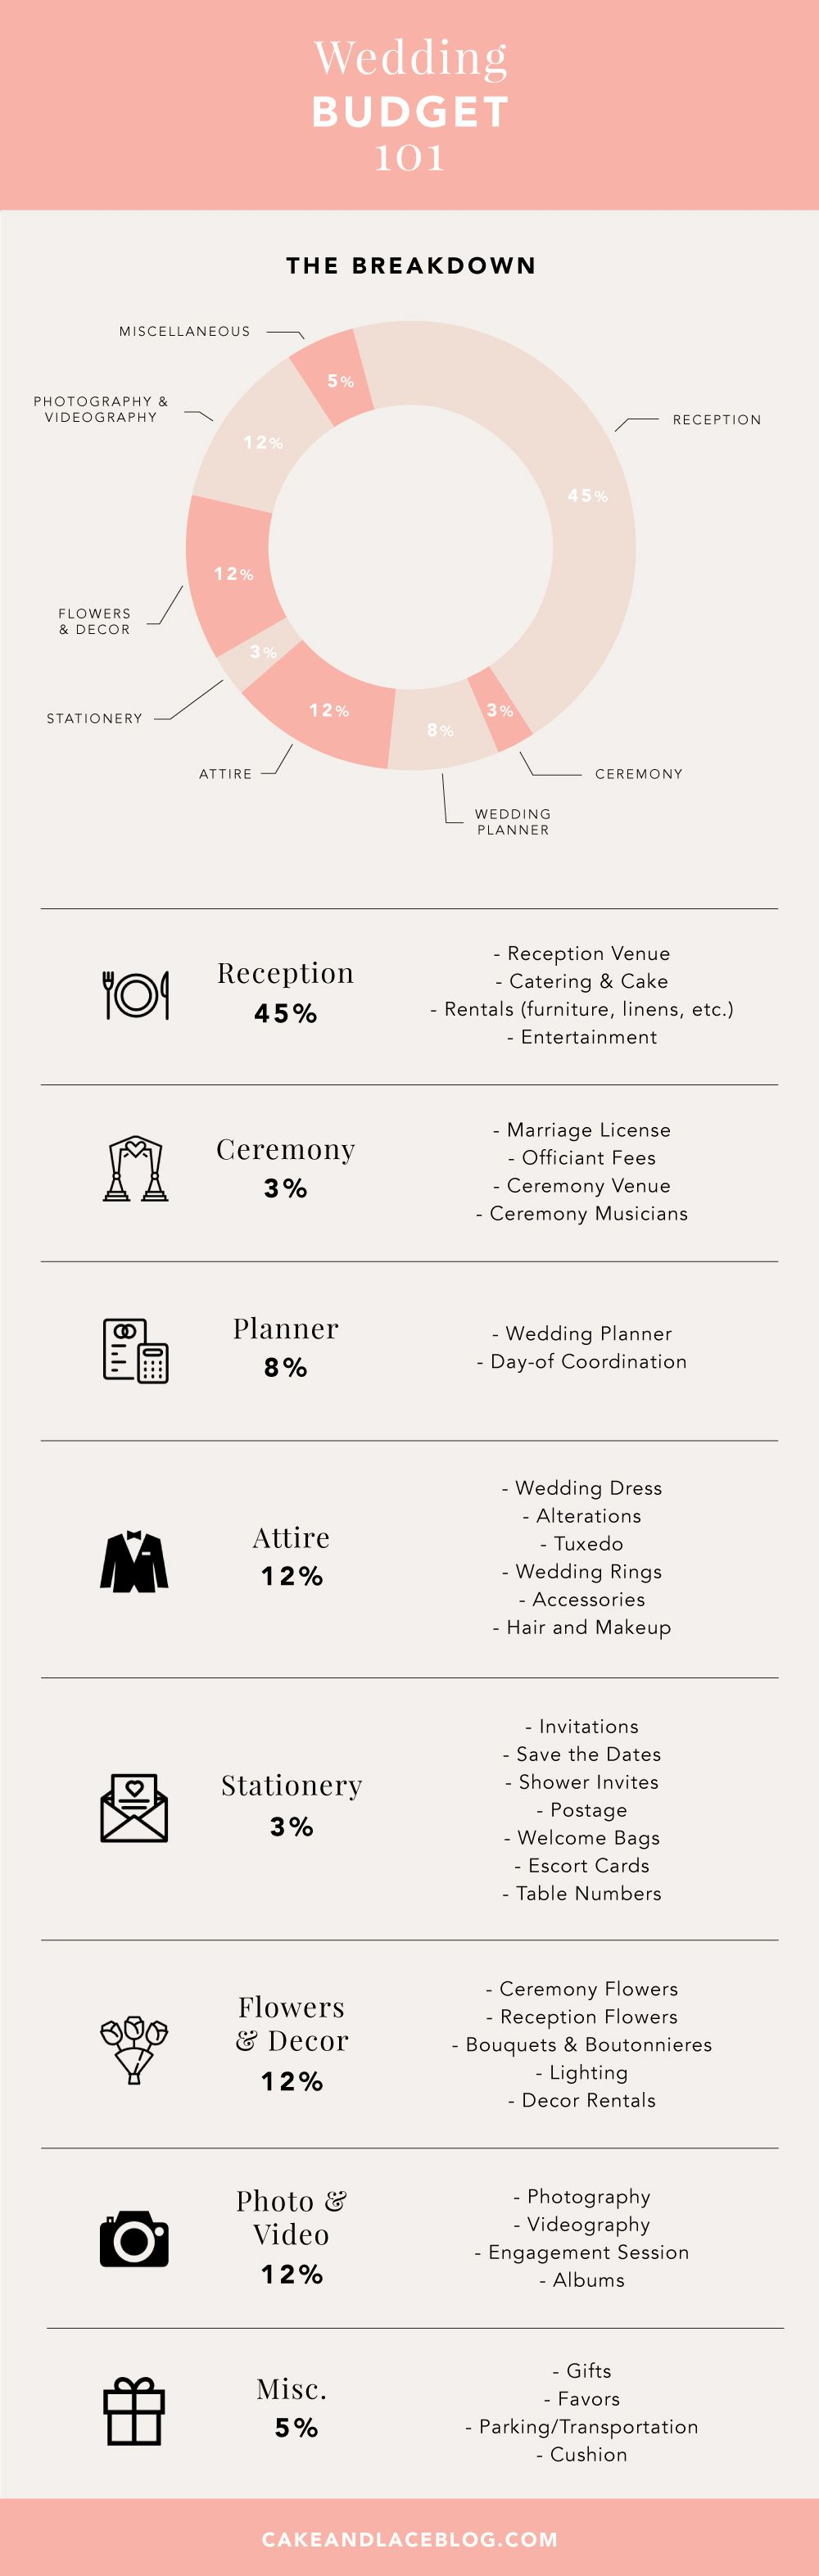 Wedding Budget   Pie Charts Budgeting And Pies